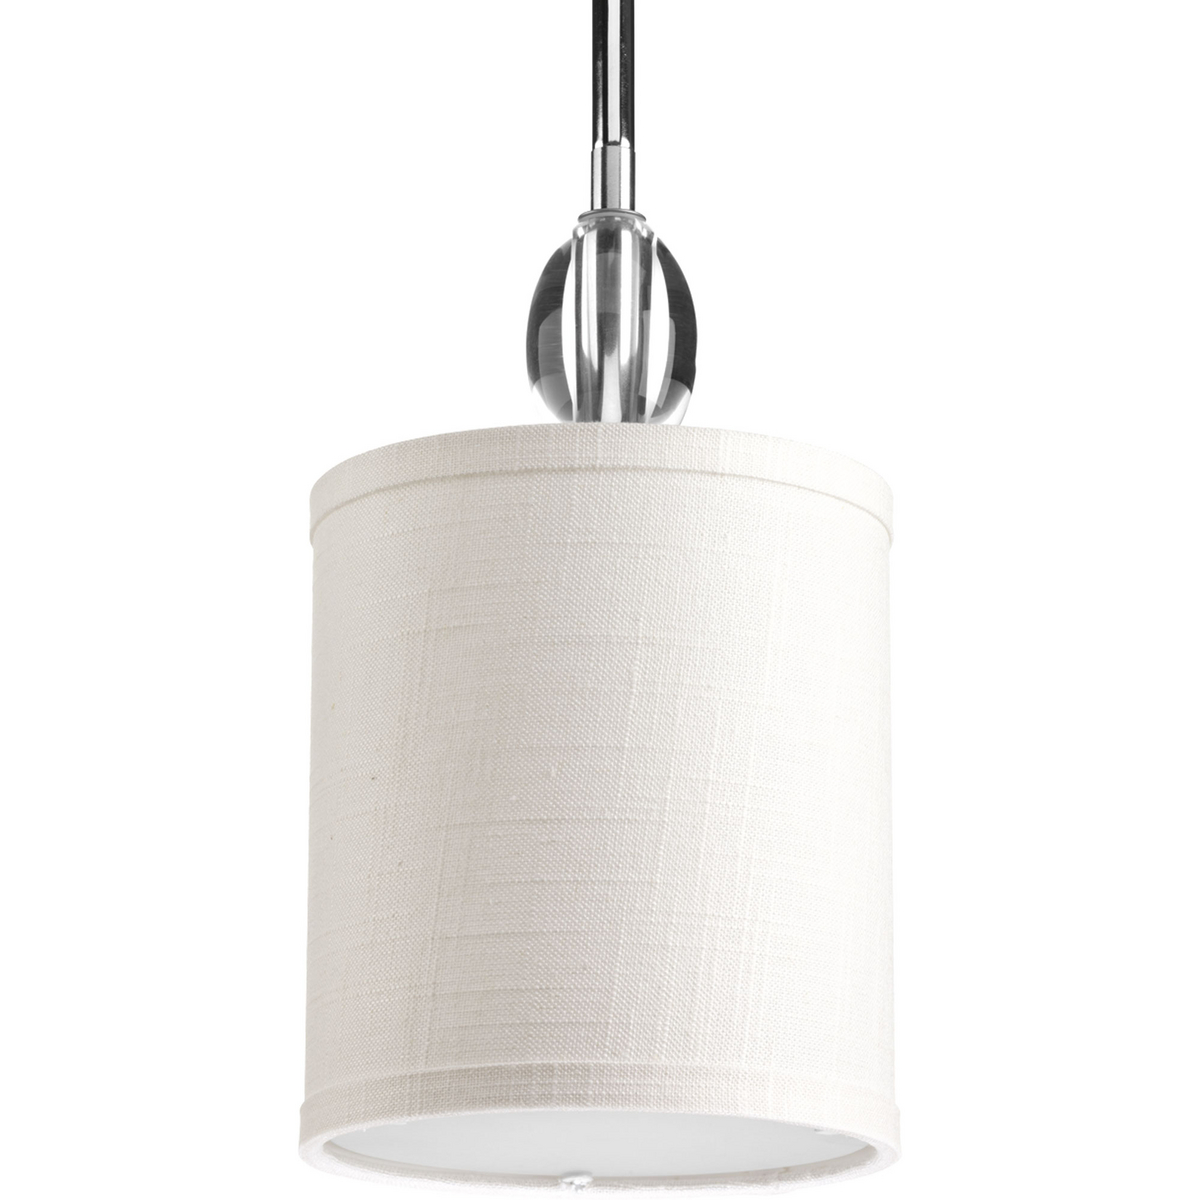 PRO P5031-15 1X100M mini pendant with K9 glass accents Status